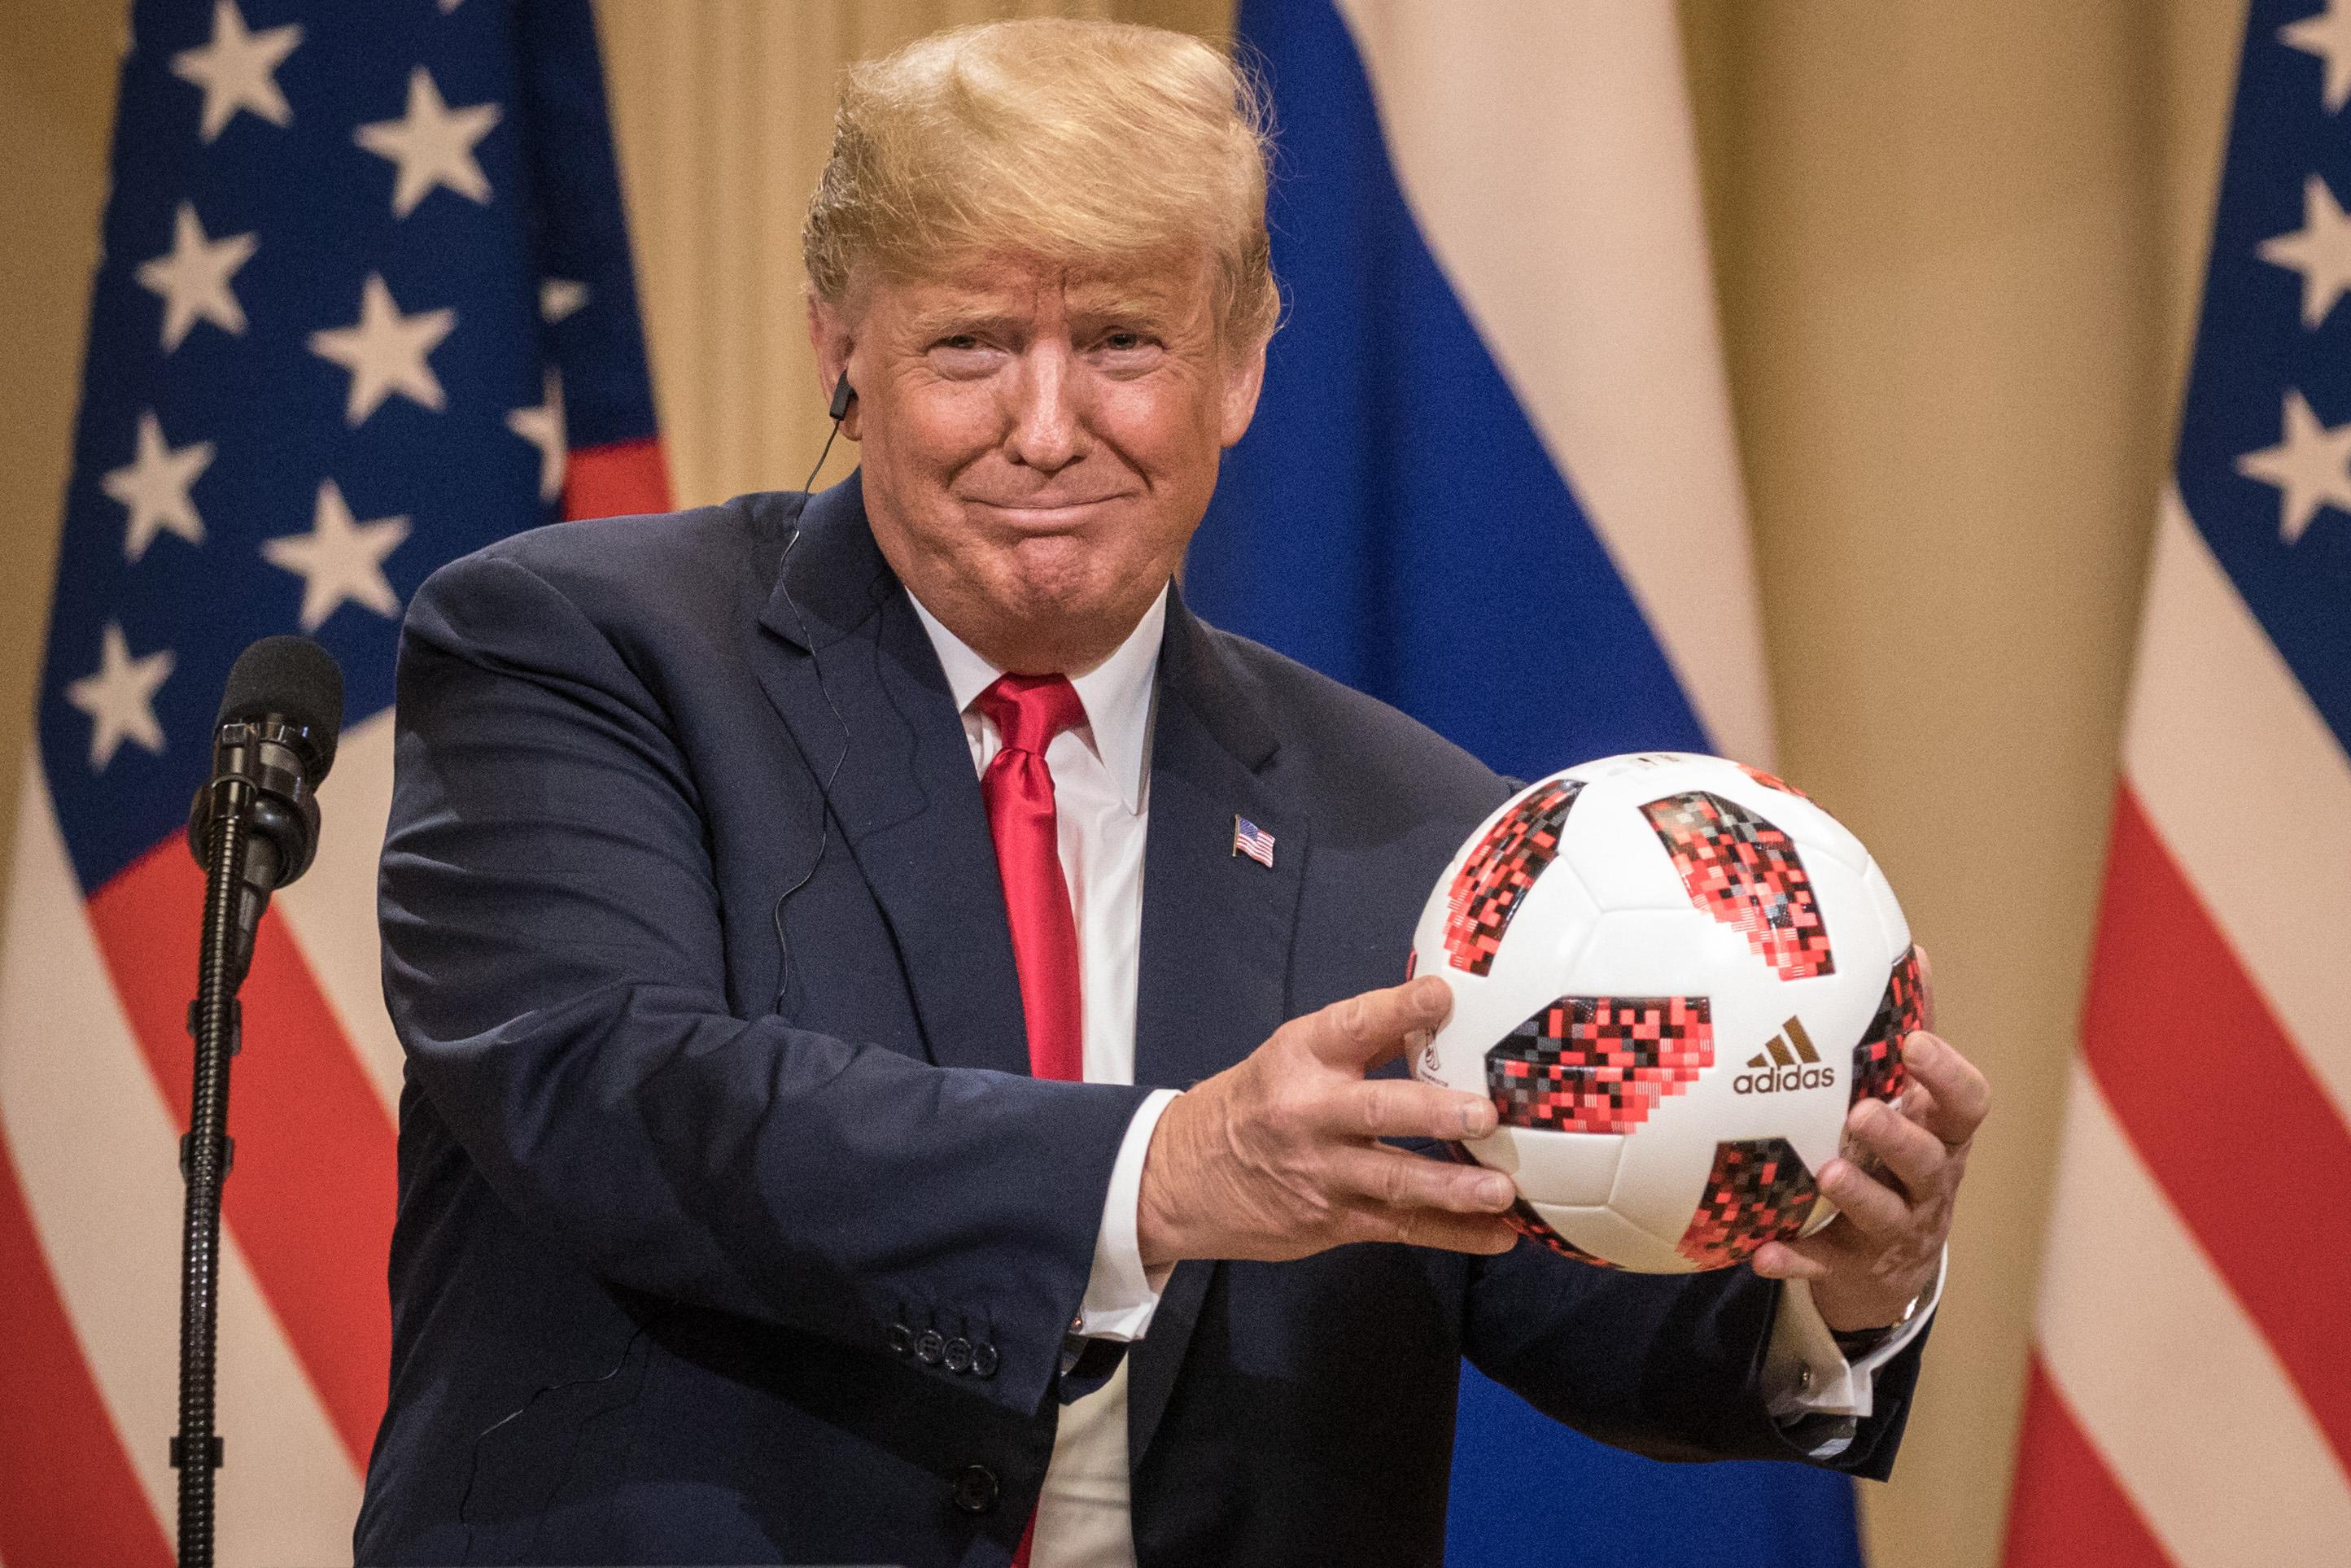 President Donald Trump holds a World Cup football given to him by Russian President Vladimir Putin during a joint press conference after their summit on July 16, 2018 in Helsinki, Finland.